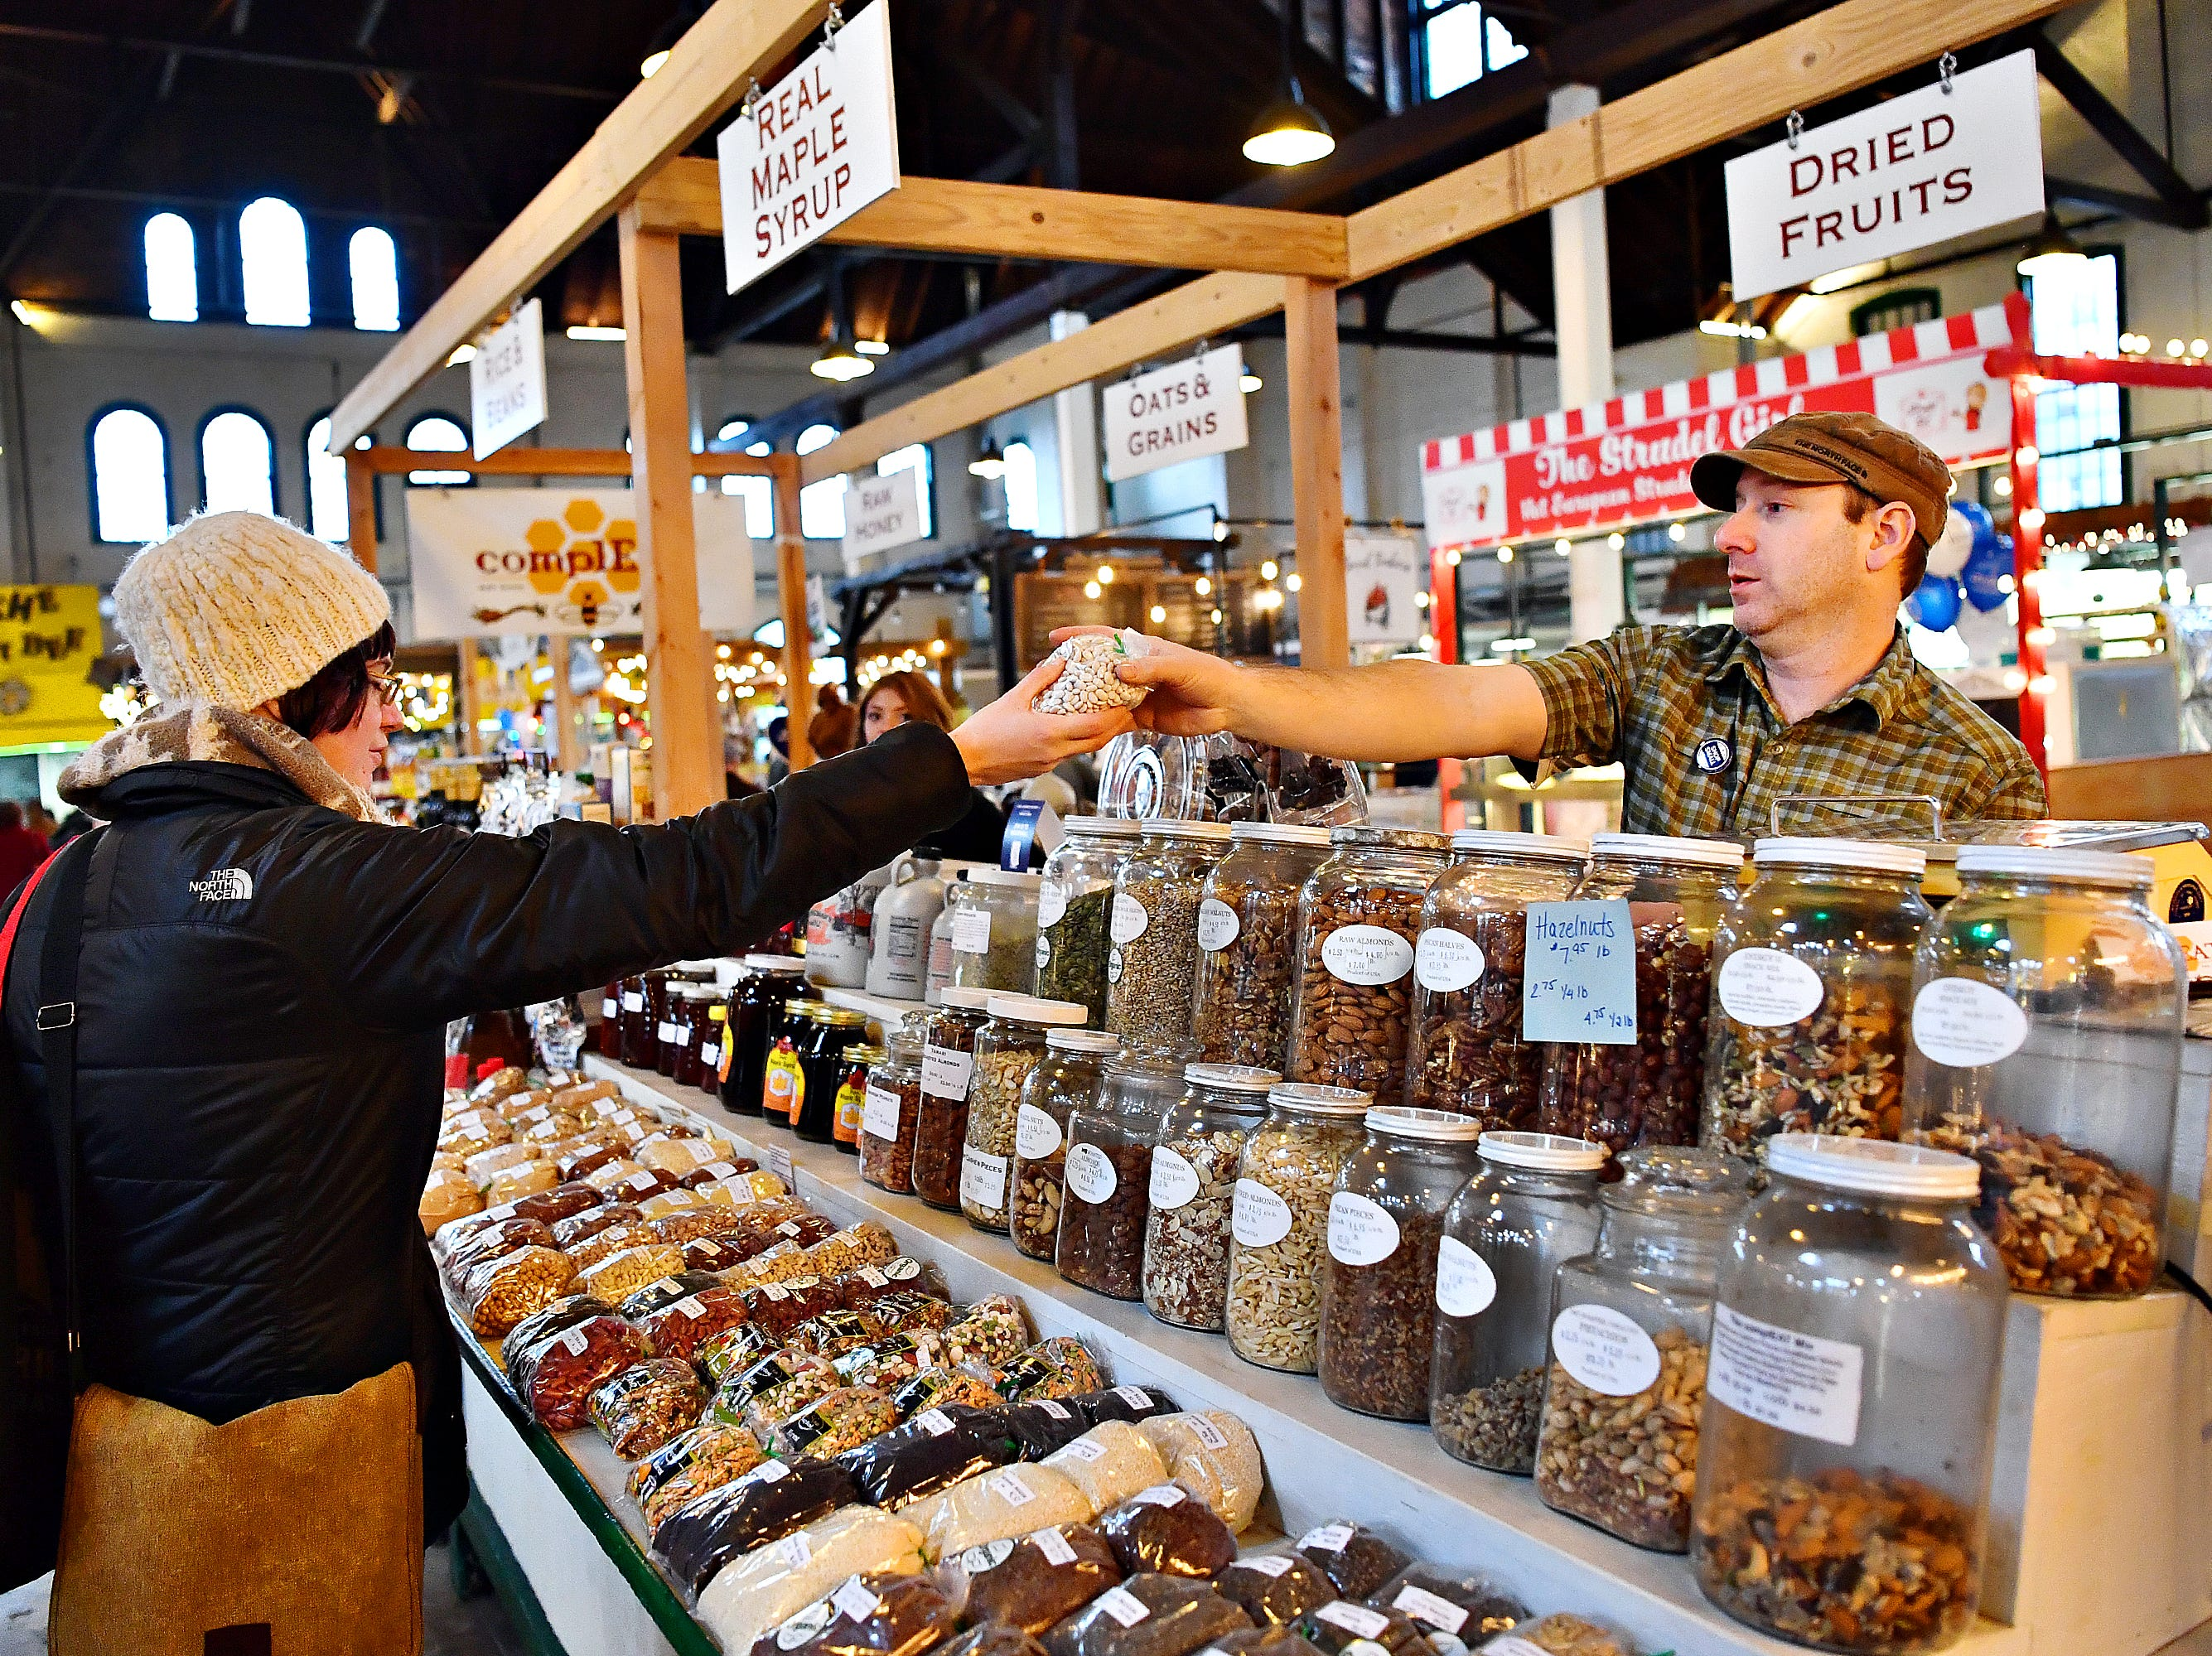 Owner Kevin Westover, right, of ComplEAT, hands customer Amanda Gearhart, her order during Small Business Saturday at Central Market in York City, Saturday, Nov. 24, 2018. Dawn J. Sagert photo